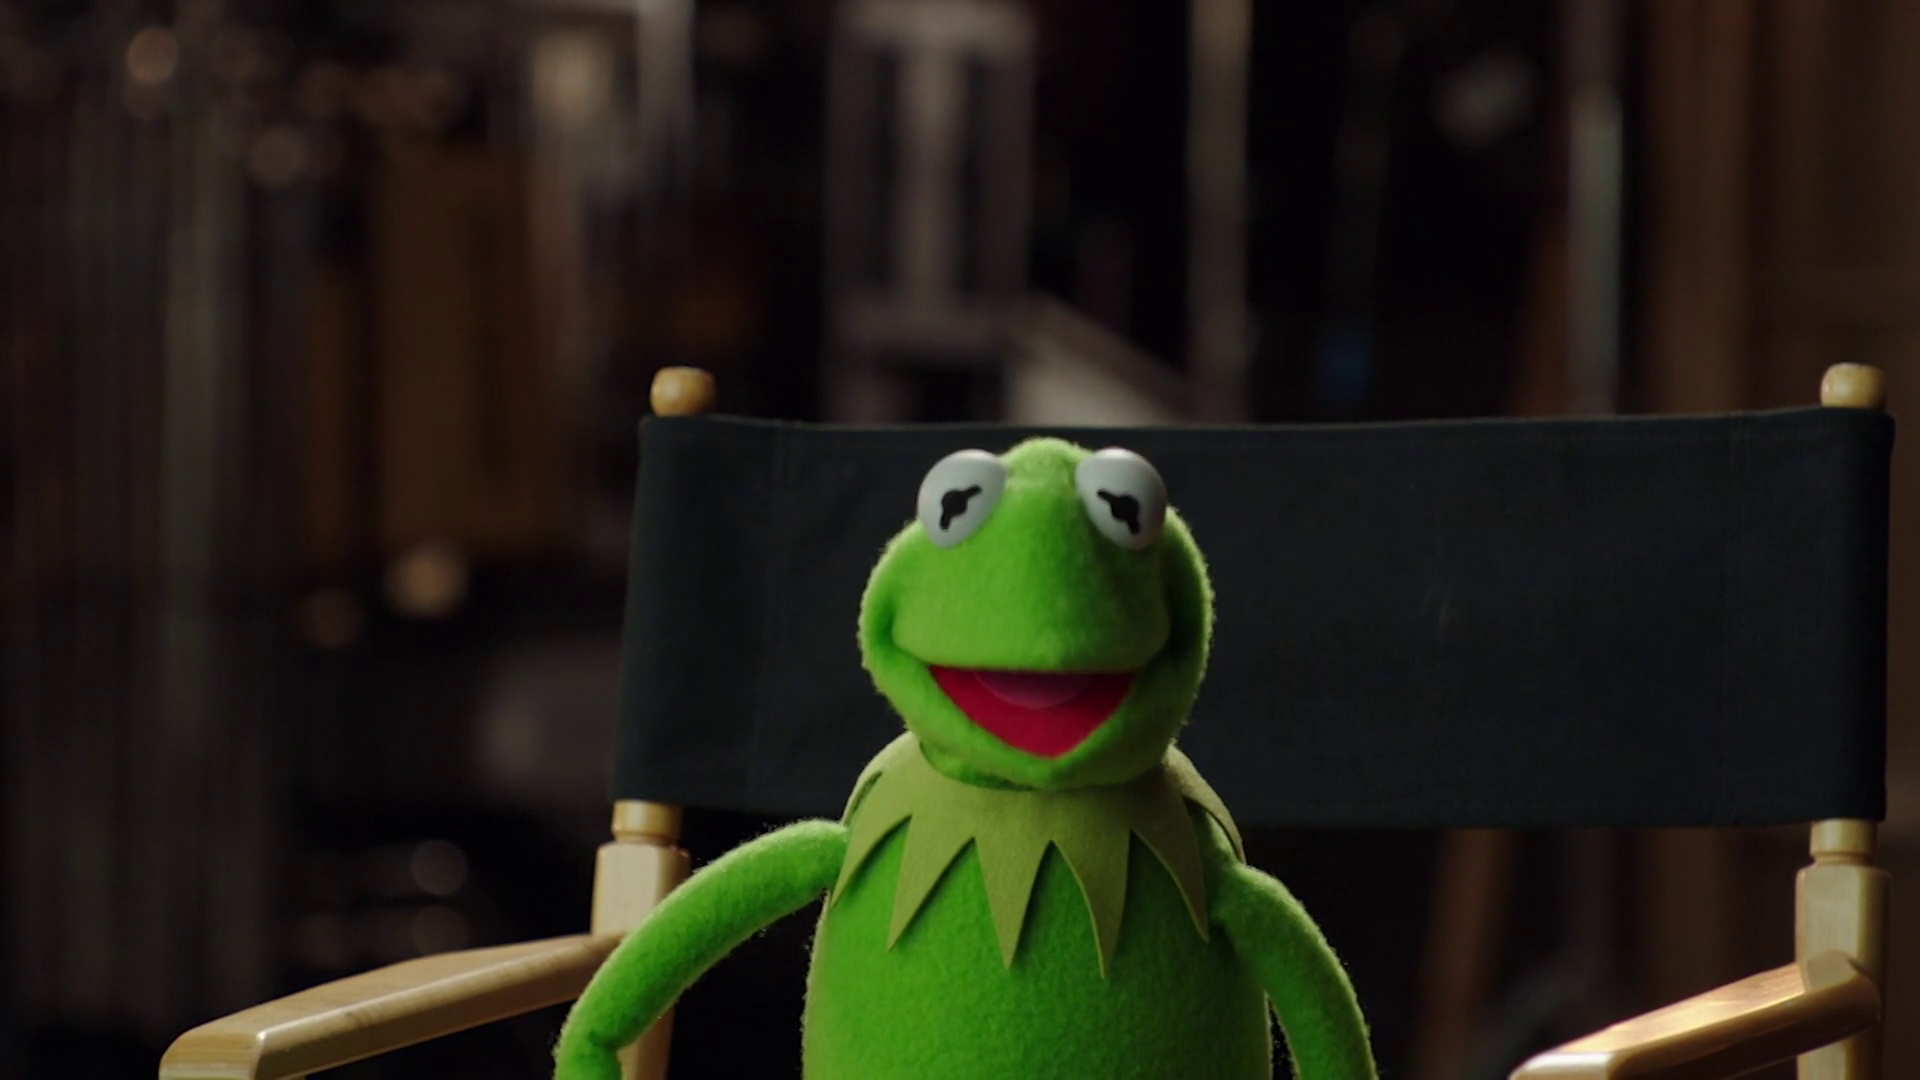 Kermit The Frog - Executive Producer | Up Late with Miss Piggy - ABC's The Muppets